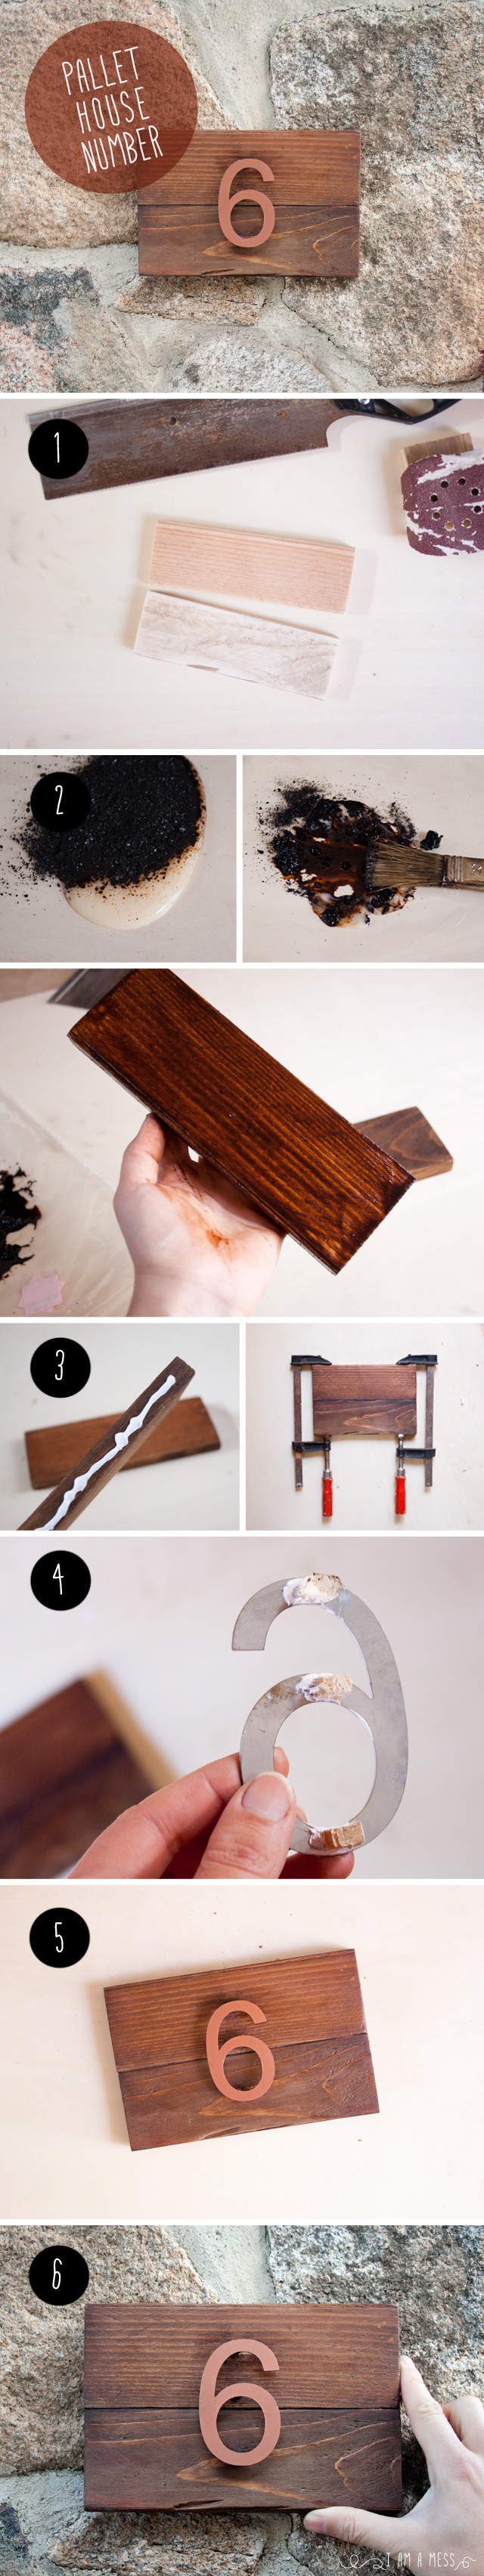 """DIY pallet house number by """"I am a Mess"""""""